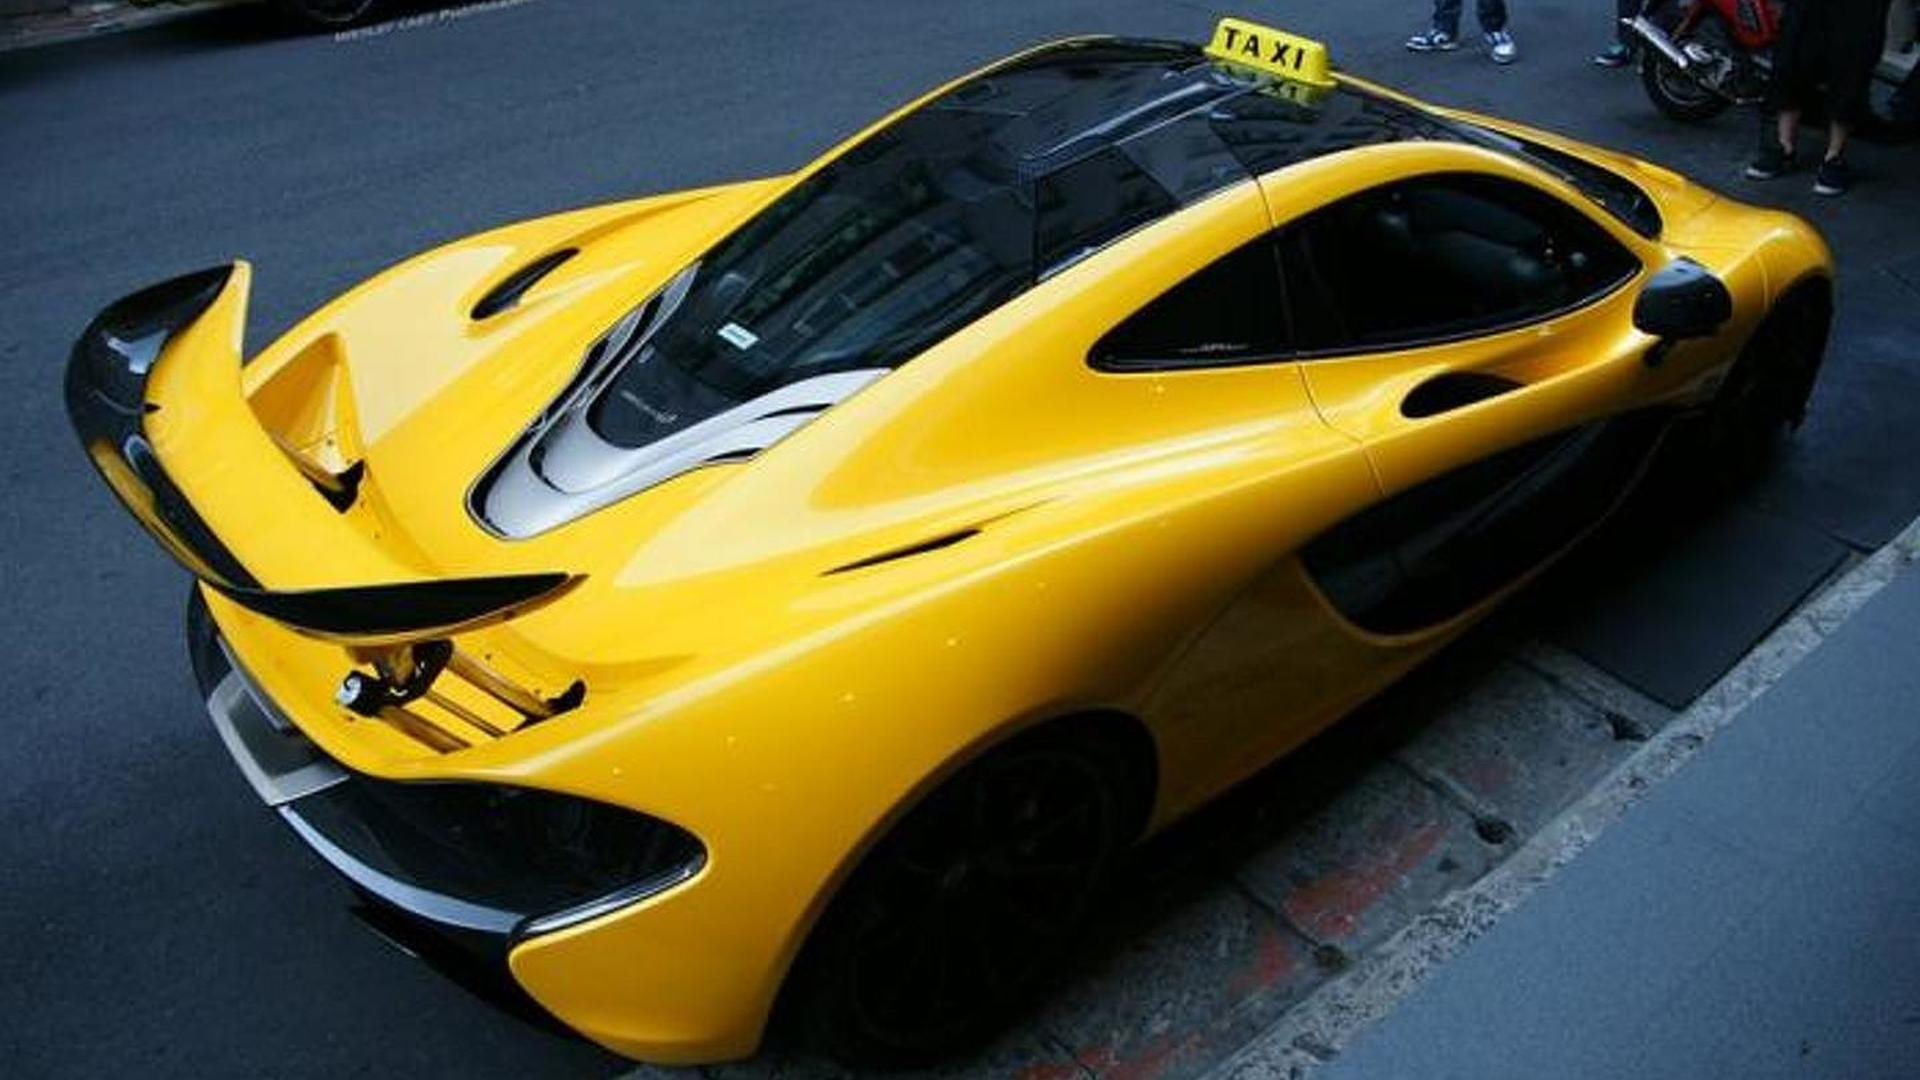 McLaren P1 gets taxi sign in Taiwan